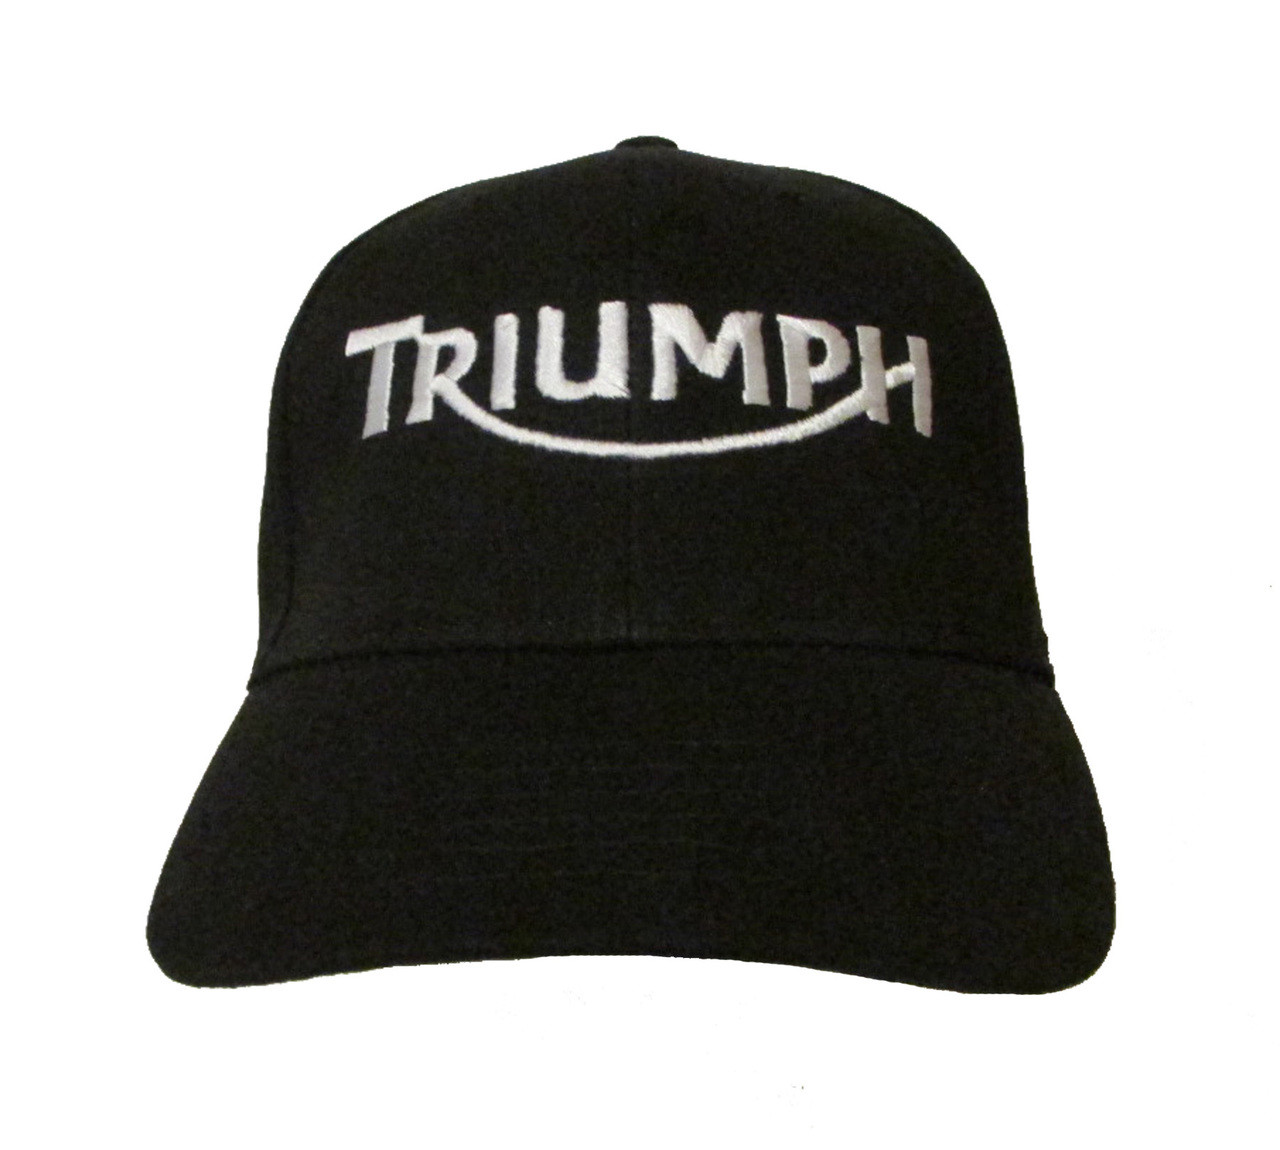 0a3dff3ee1db7 Triumph Motorcycle Logo Embroidered Baseball Hat - Cap